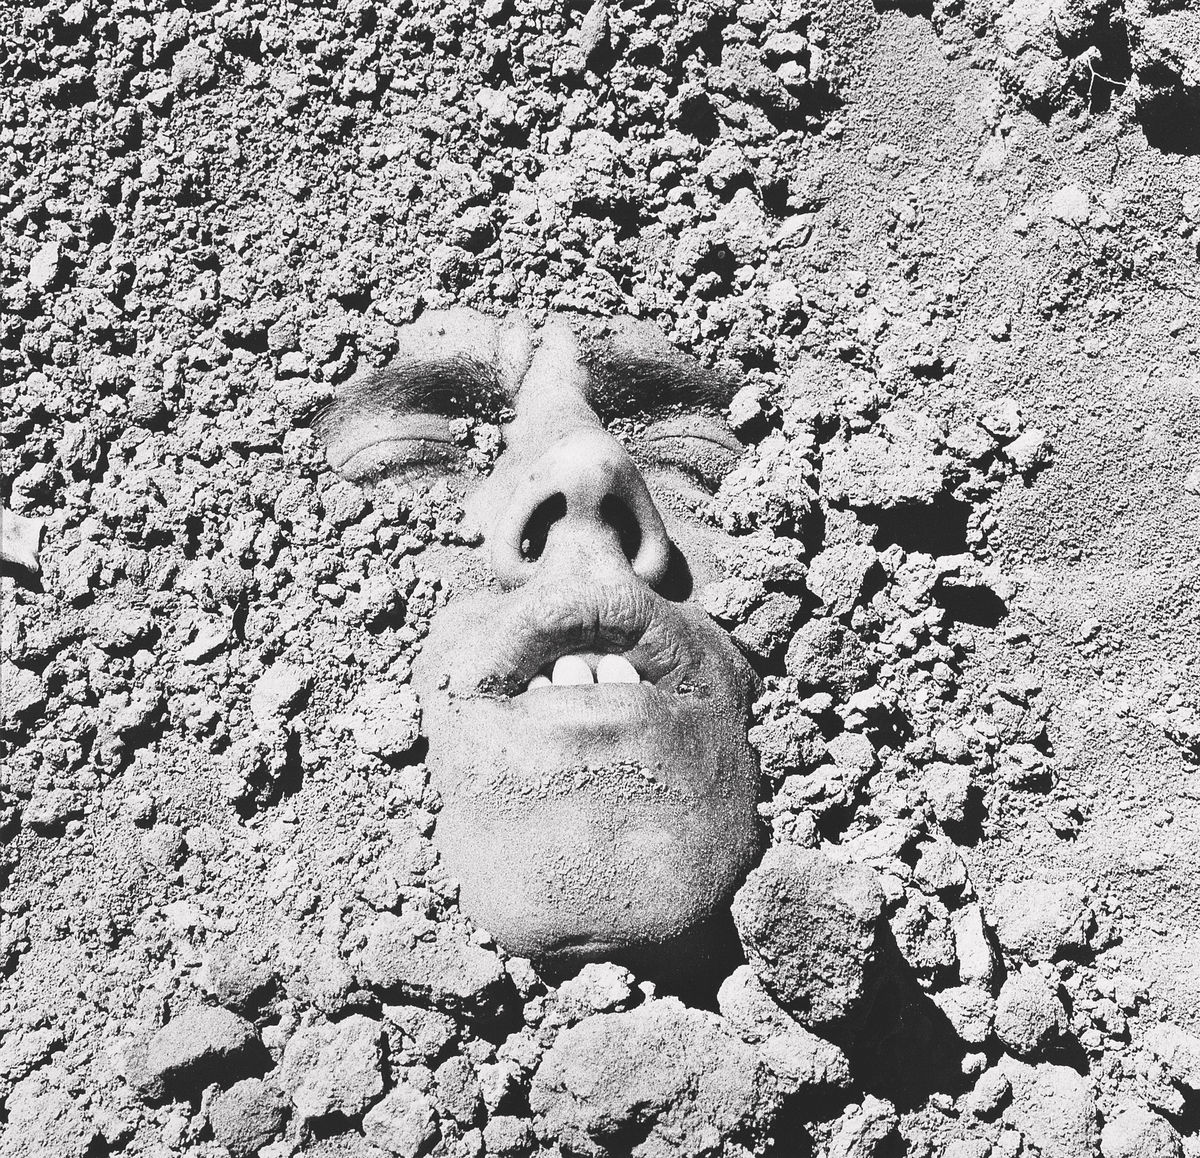 David Wojnarowicz (1954–1992),  Untitled (Face in Dirt) , 1991 (printed 1993). Gelatin silver print, 19 × 23 in. (48.3 × 58.4 cm). Collection of Ted and Maryanne Ellison Simmons. Image courtesy the Estate of David Wojnarowicz and P.P.O.W, New York.